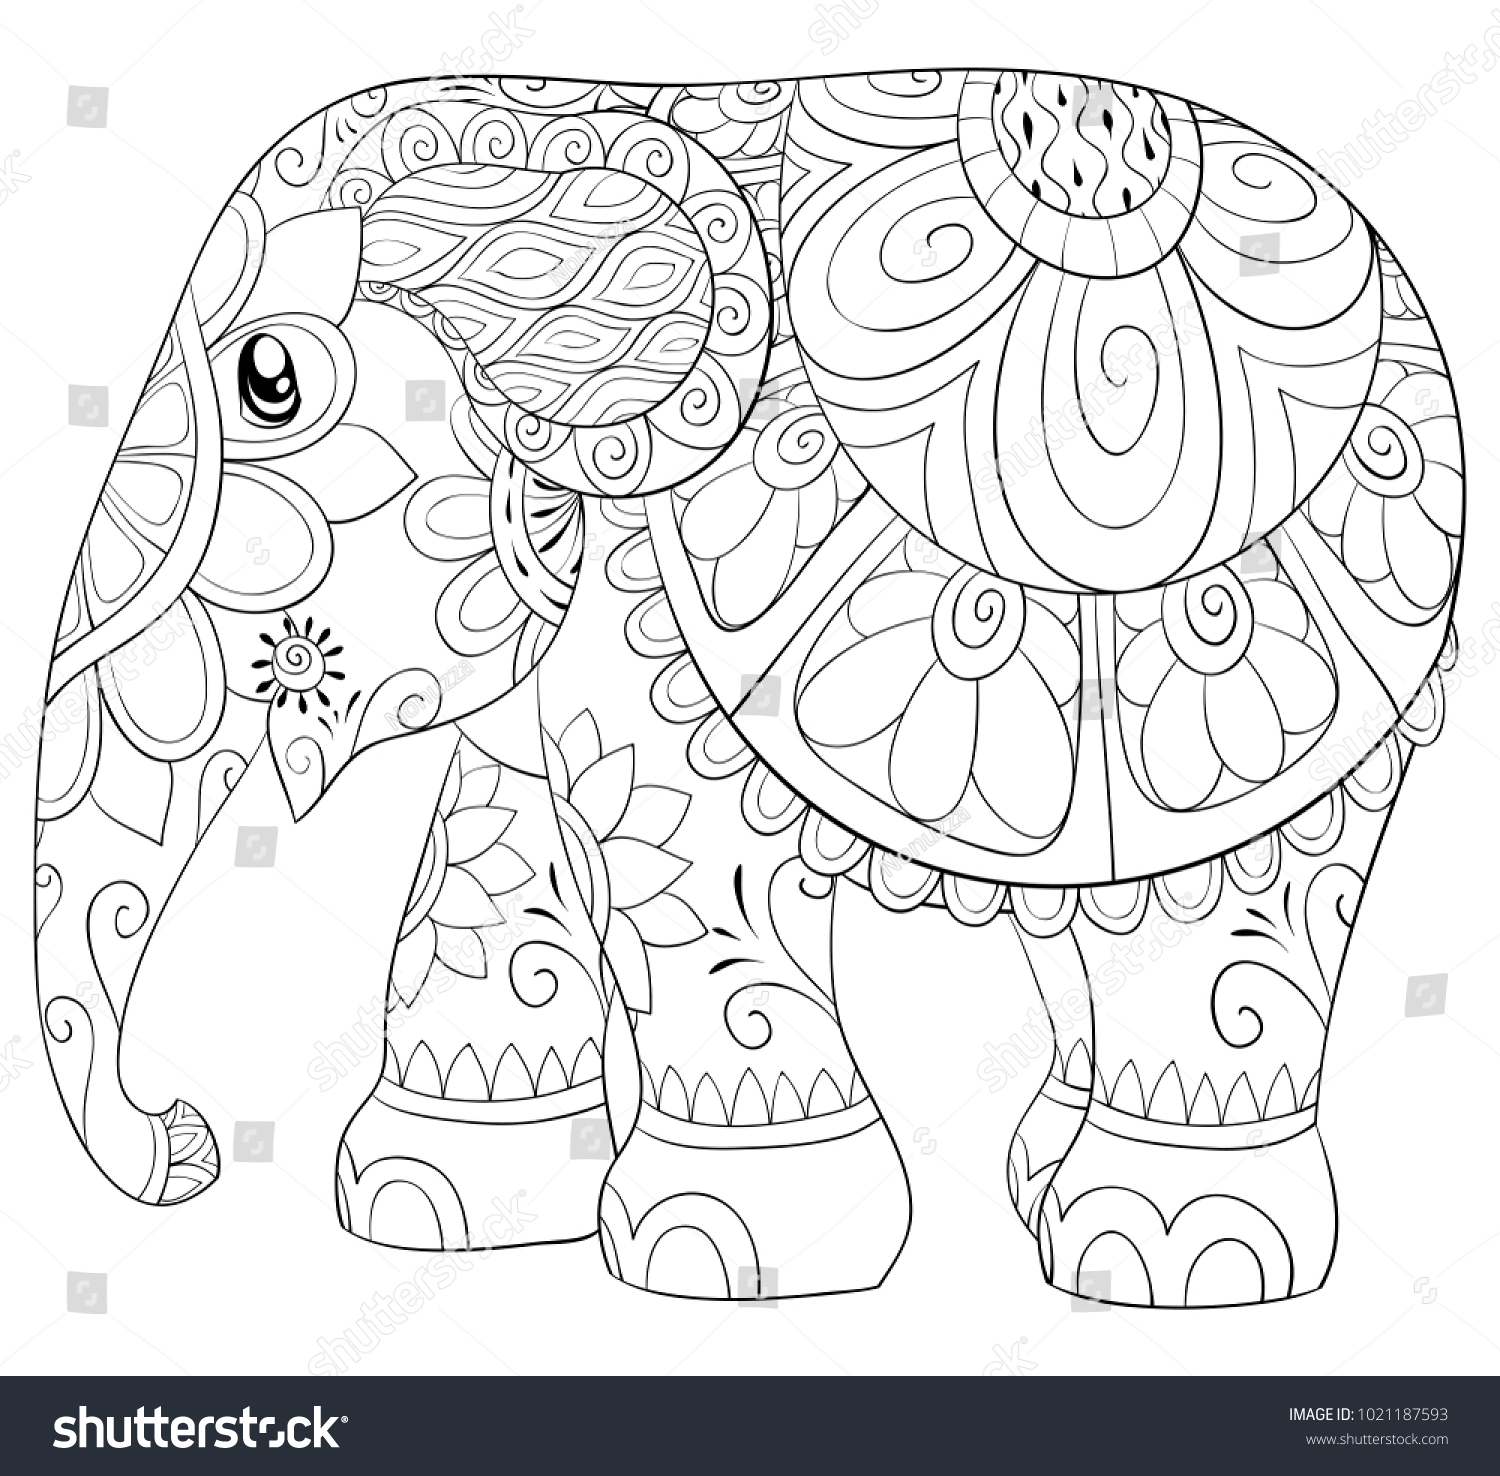 Adult Coloring Pagebook Cute Elephant Relaxing Stock Vector HD ...